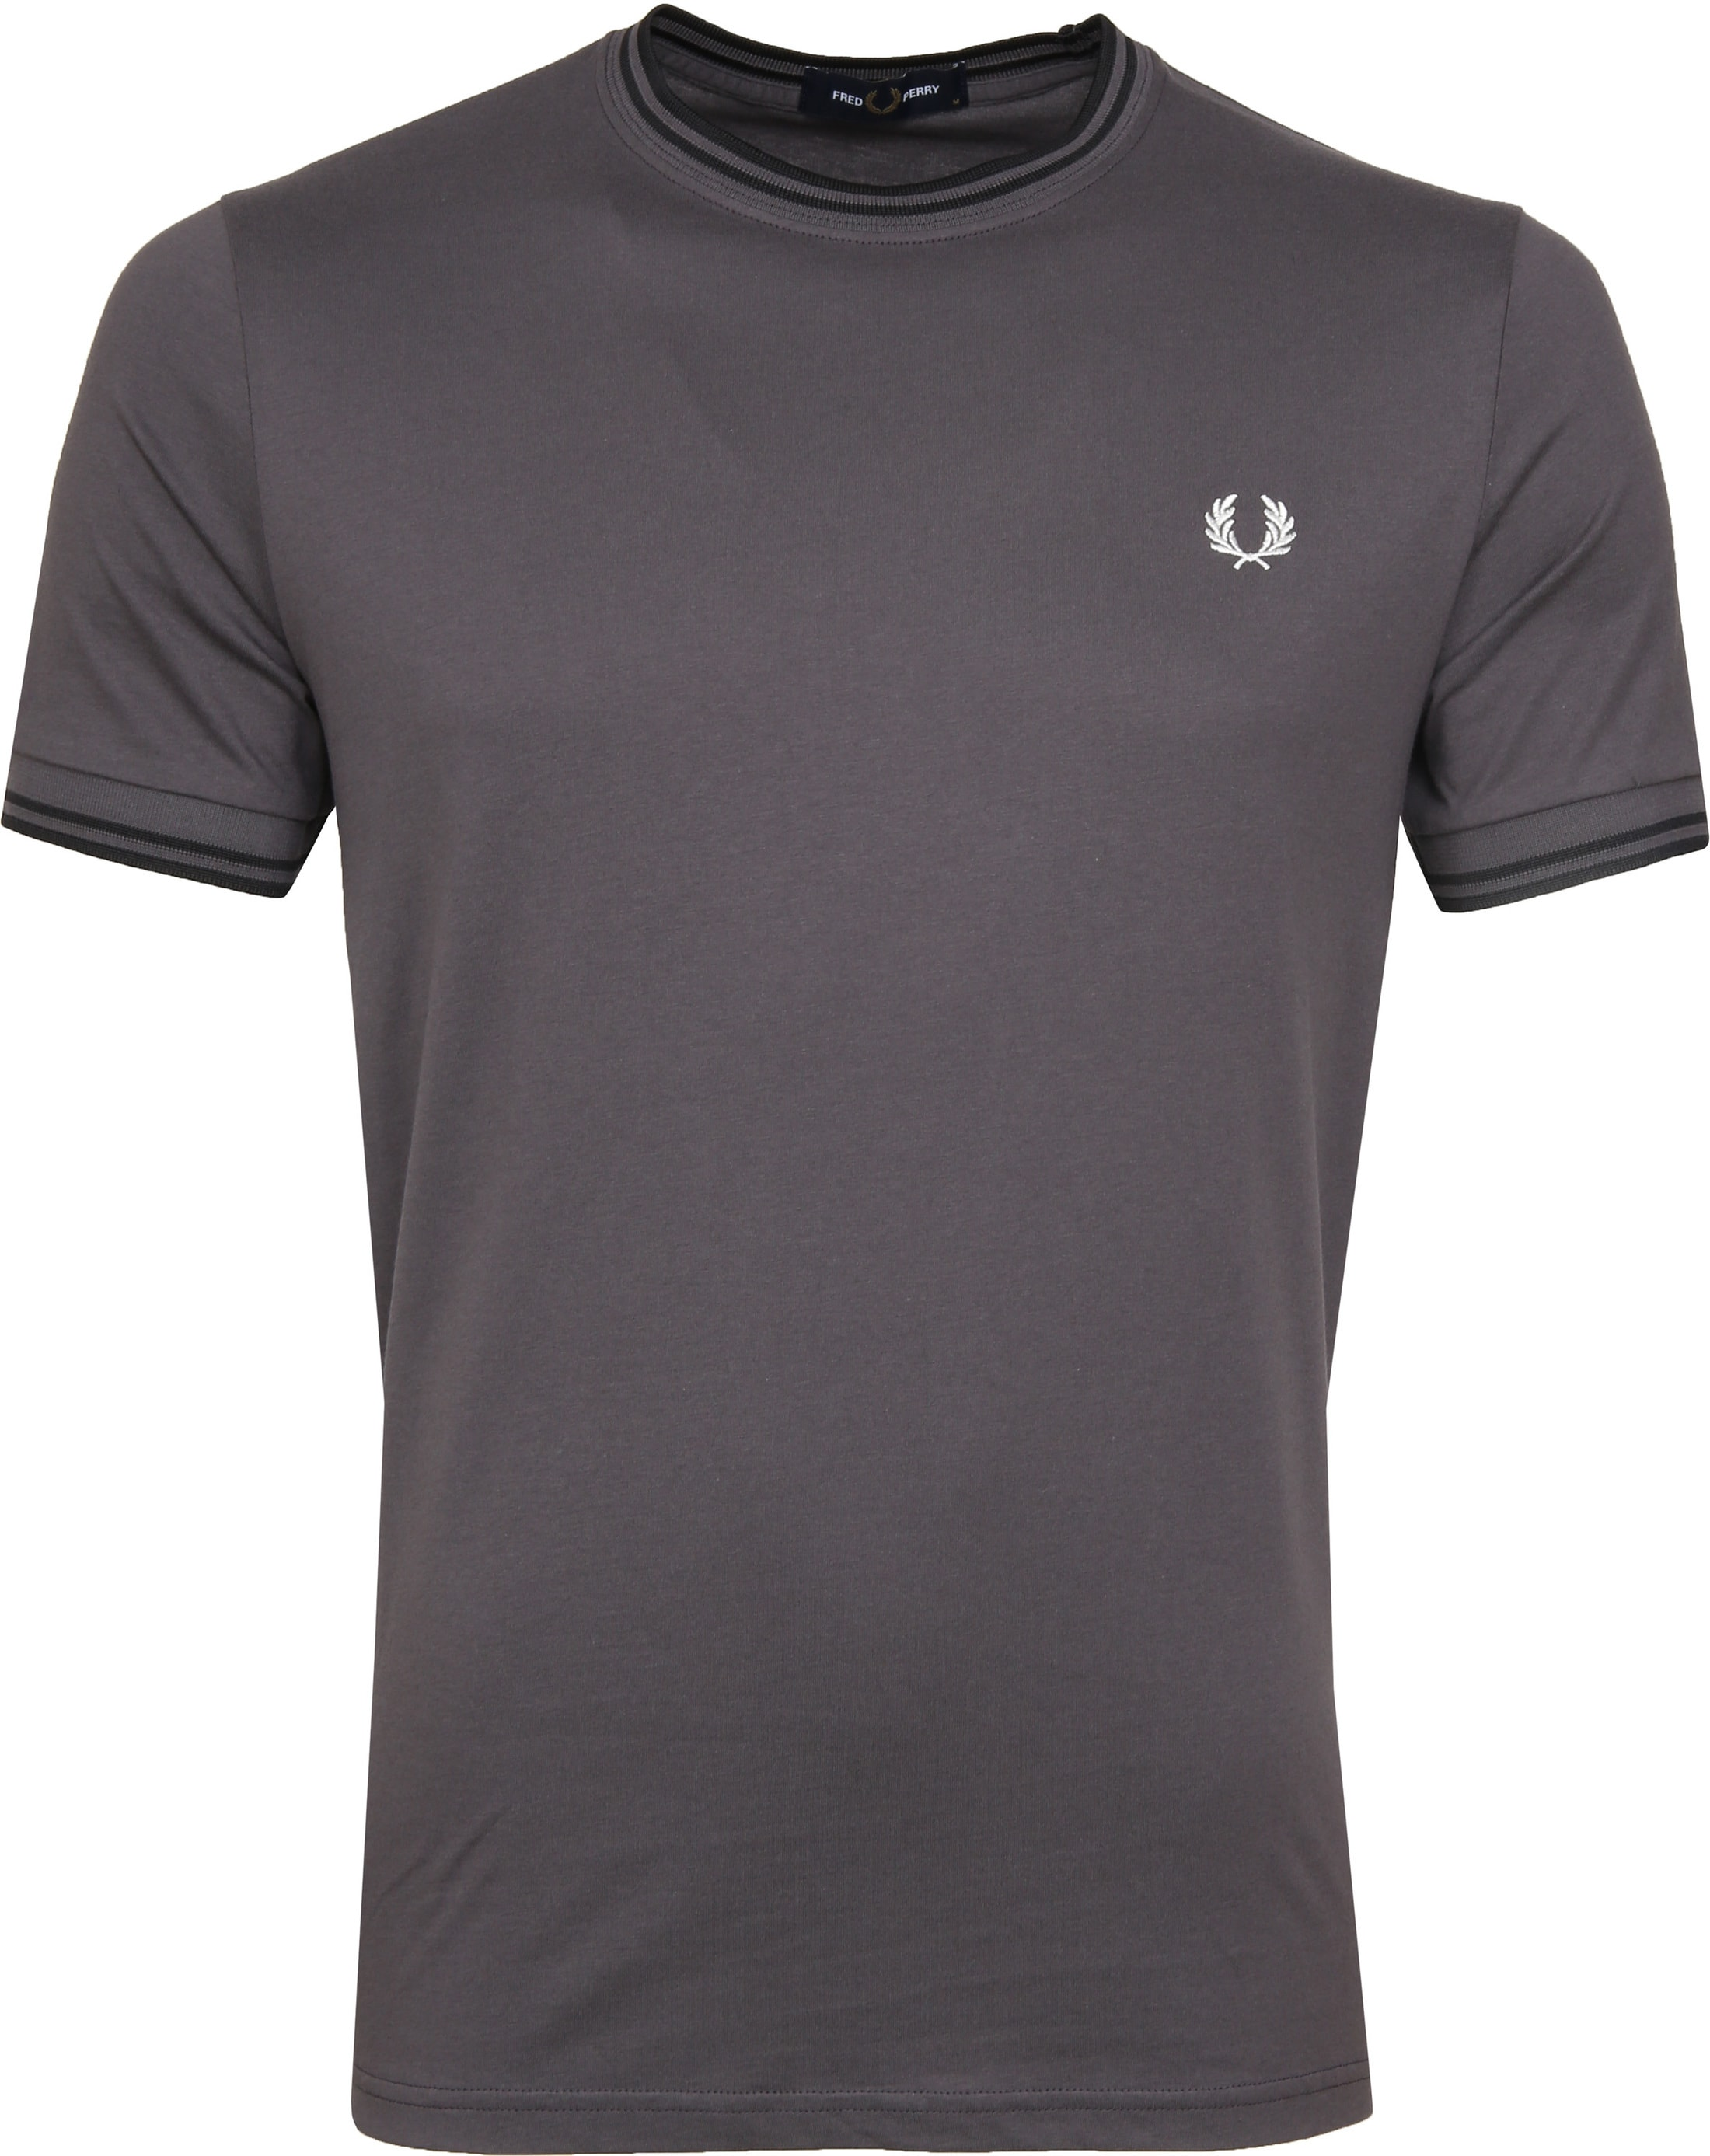 Fred Perry Twin Tipped T-shirt Grau foto 0